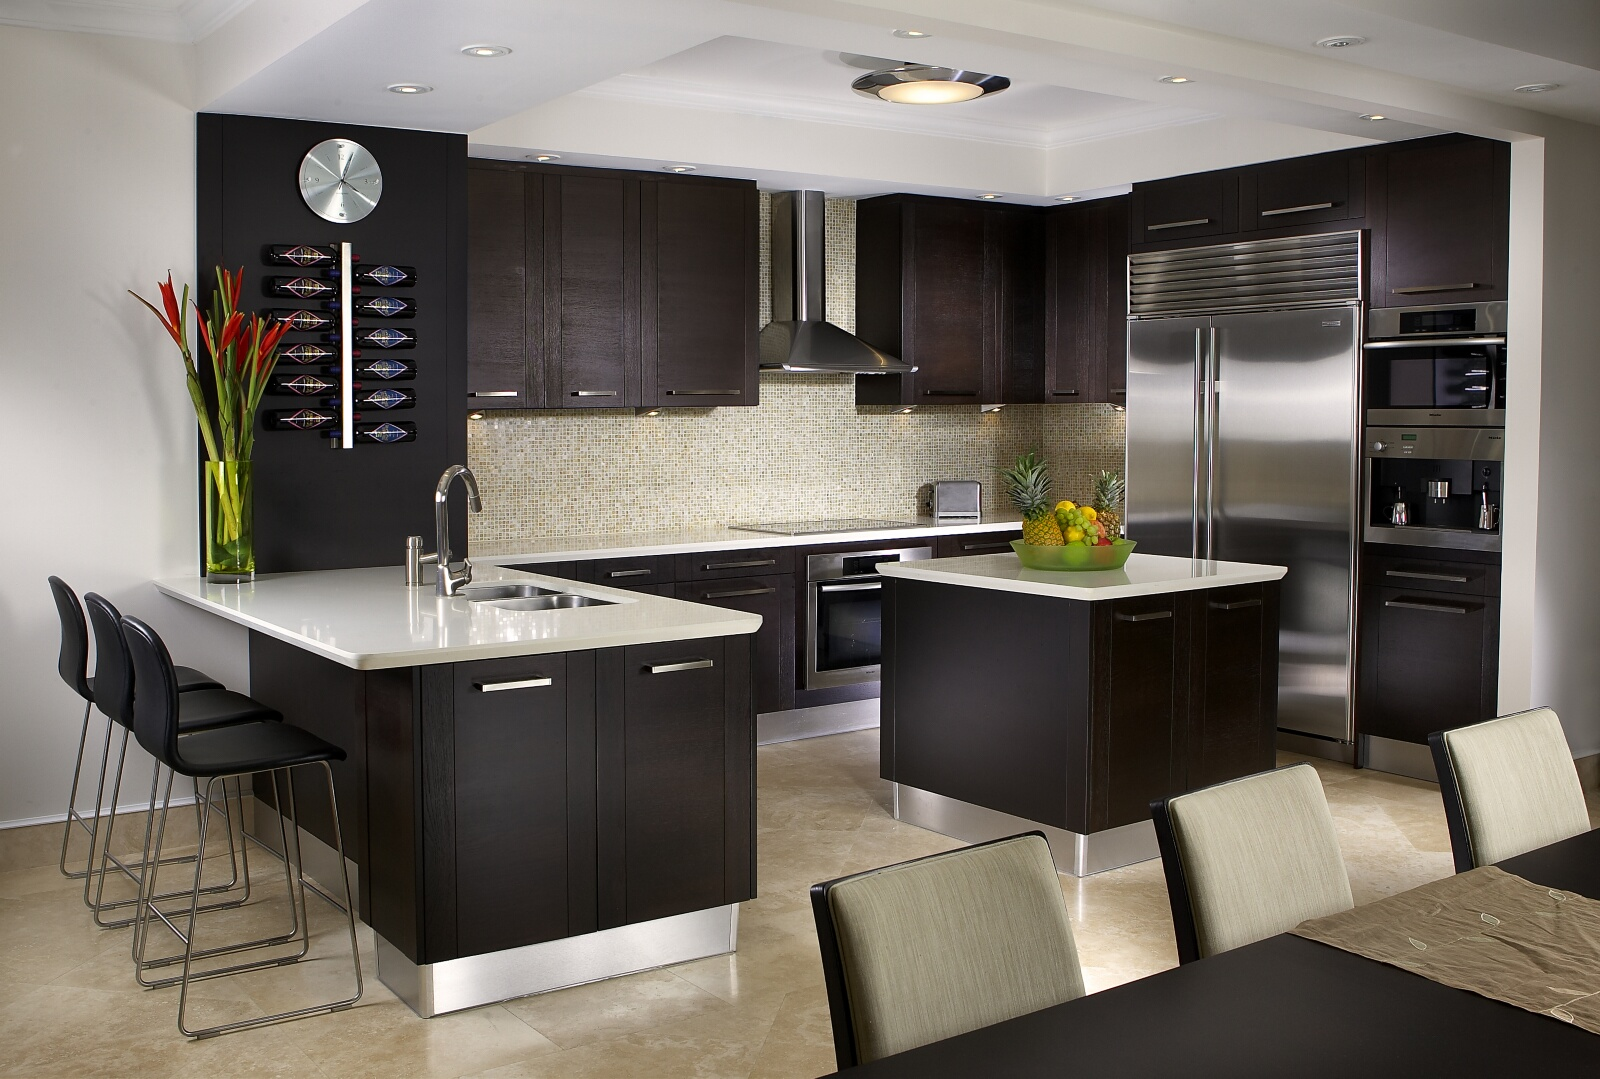 kitchen interior design services miami florida On interior decoration kitchen designs